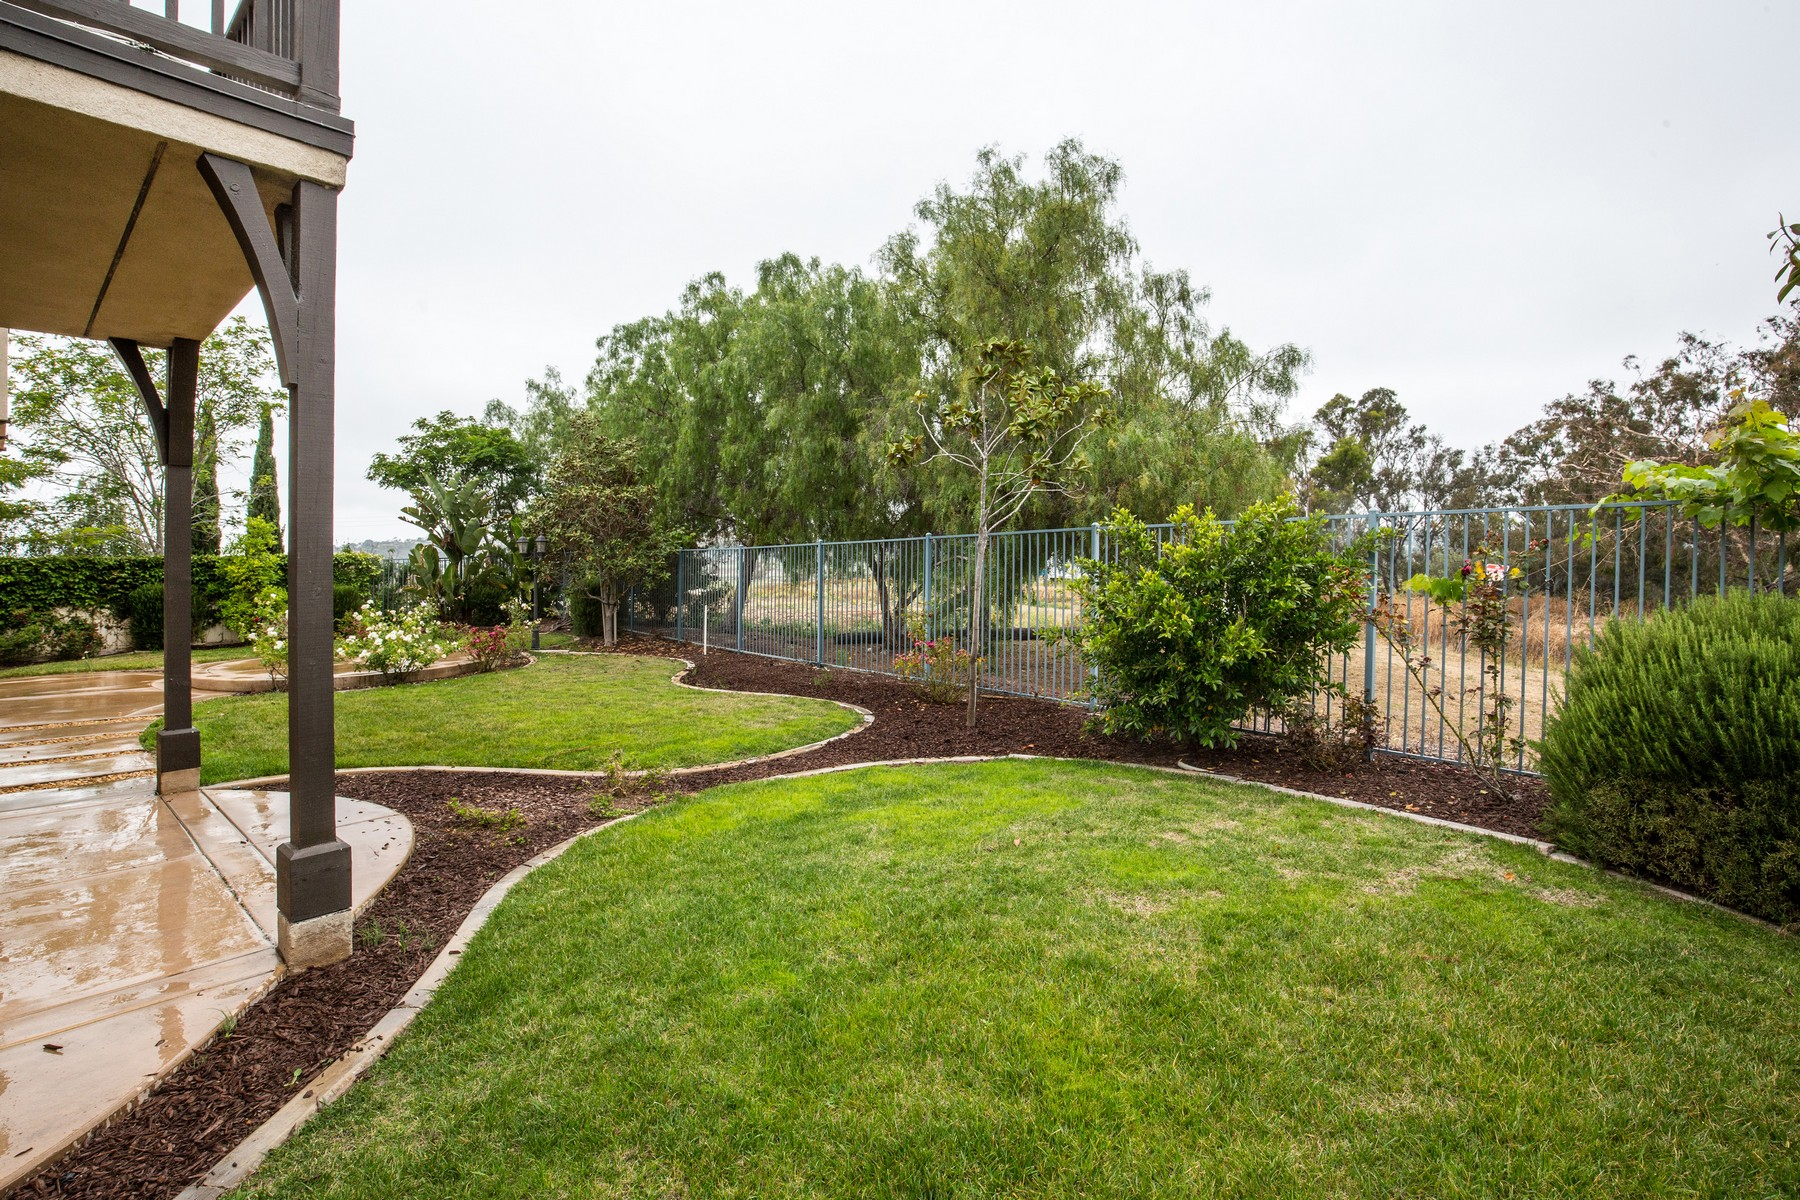 Additional photo for property listing at 13773 Rosecroft Way  San Diego, California 92130 Estados Unidos